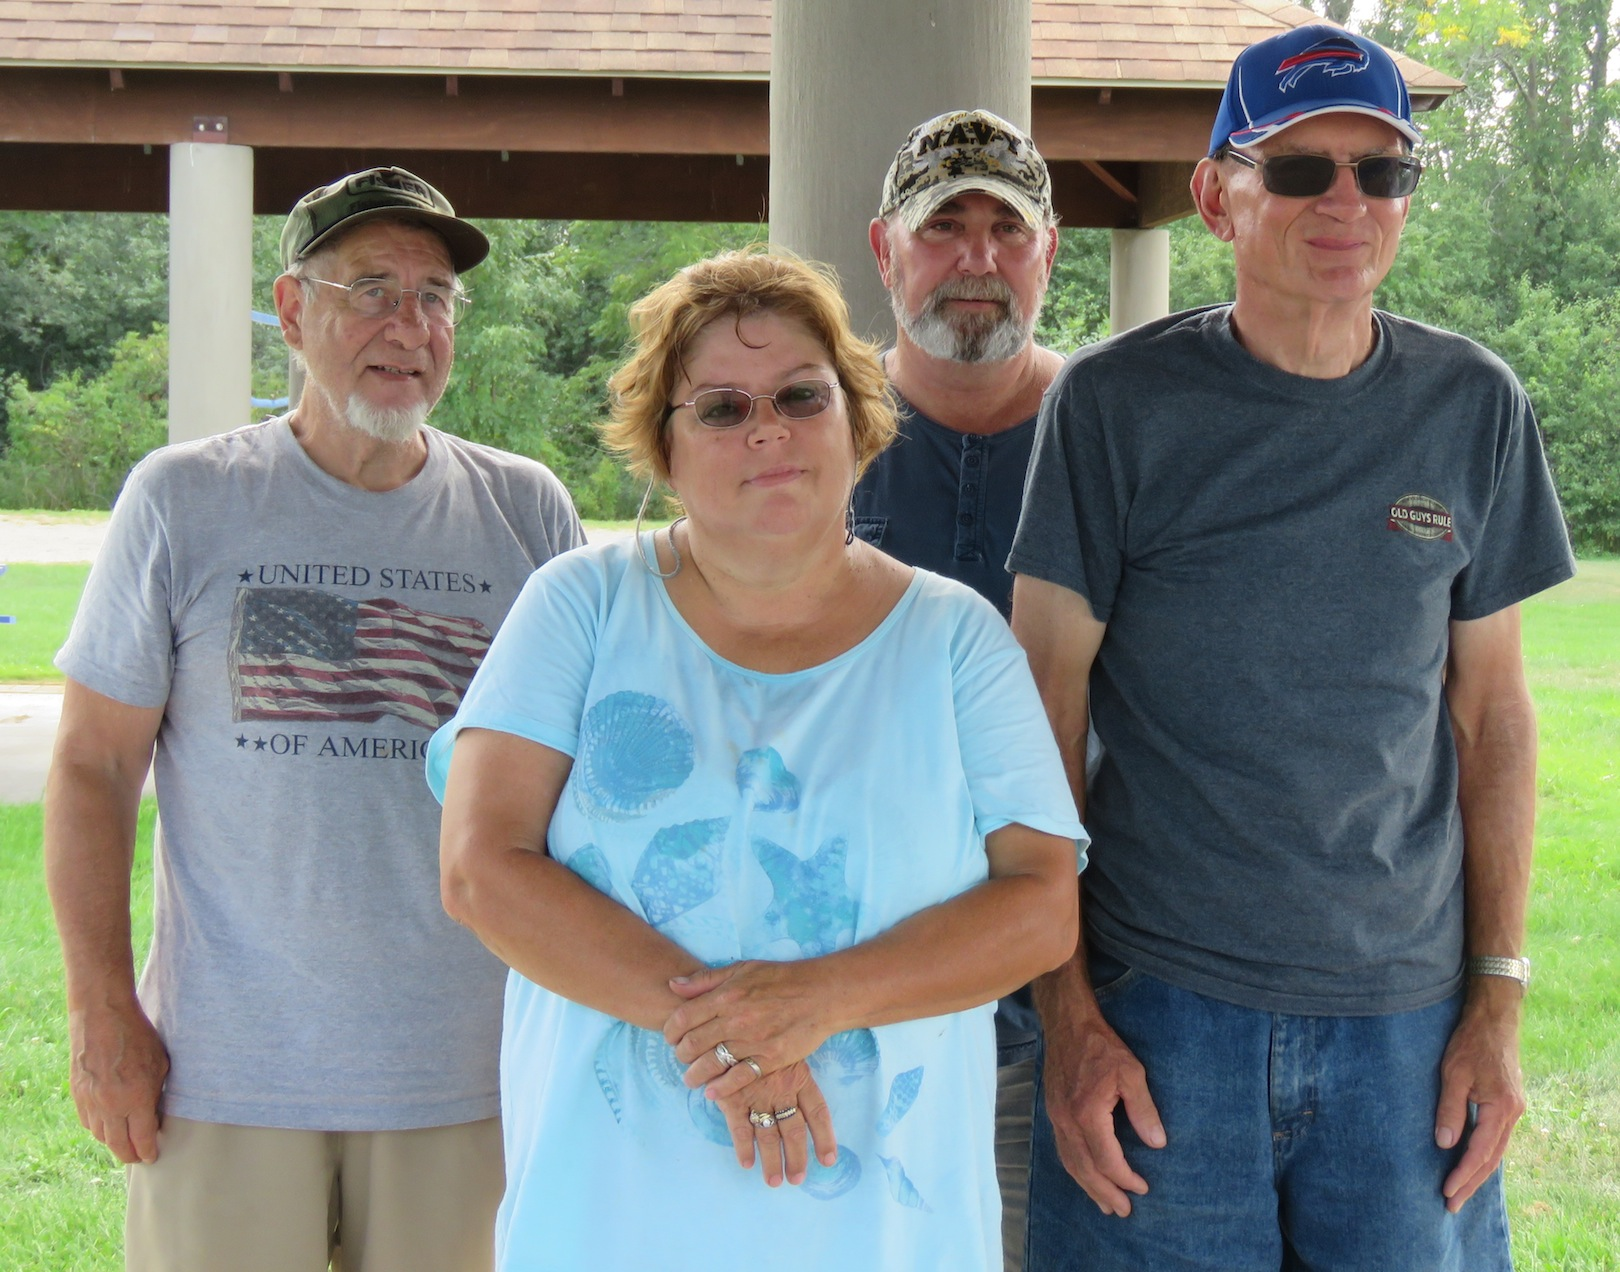 From left, some of the prize winners at the Senior Fishing Derby - Cleon Canon, Charlotte Lachant, Lou Pastor, Bruce Herman. (All photos by David Yarger)